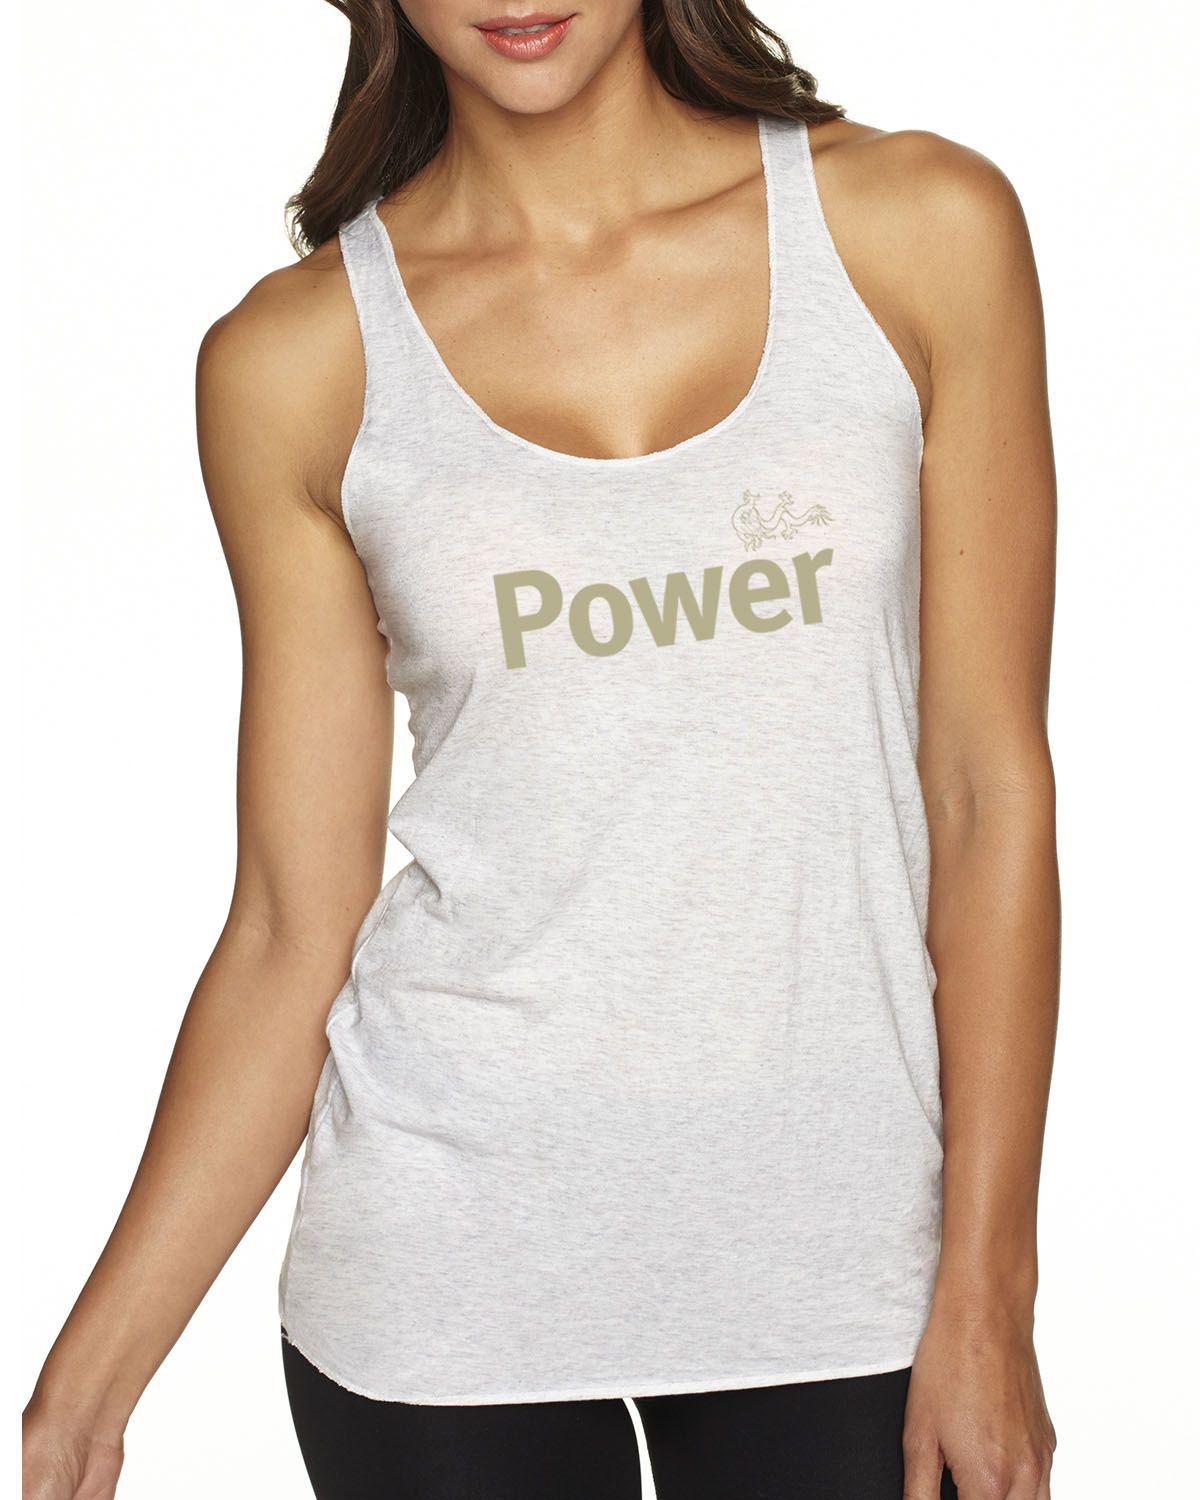 Women's Tri-blend Power Tank Top (Vintage White)